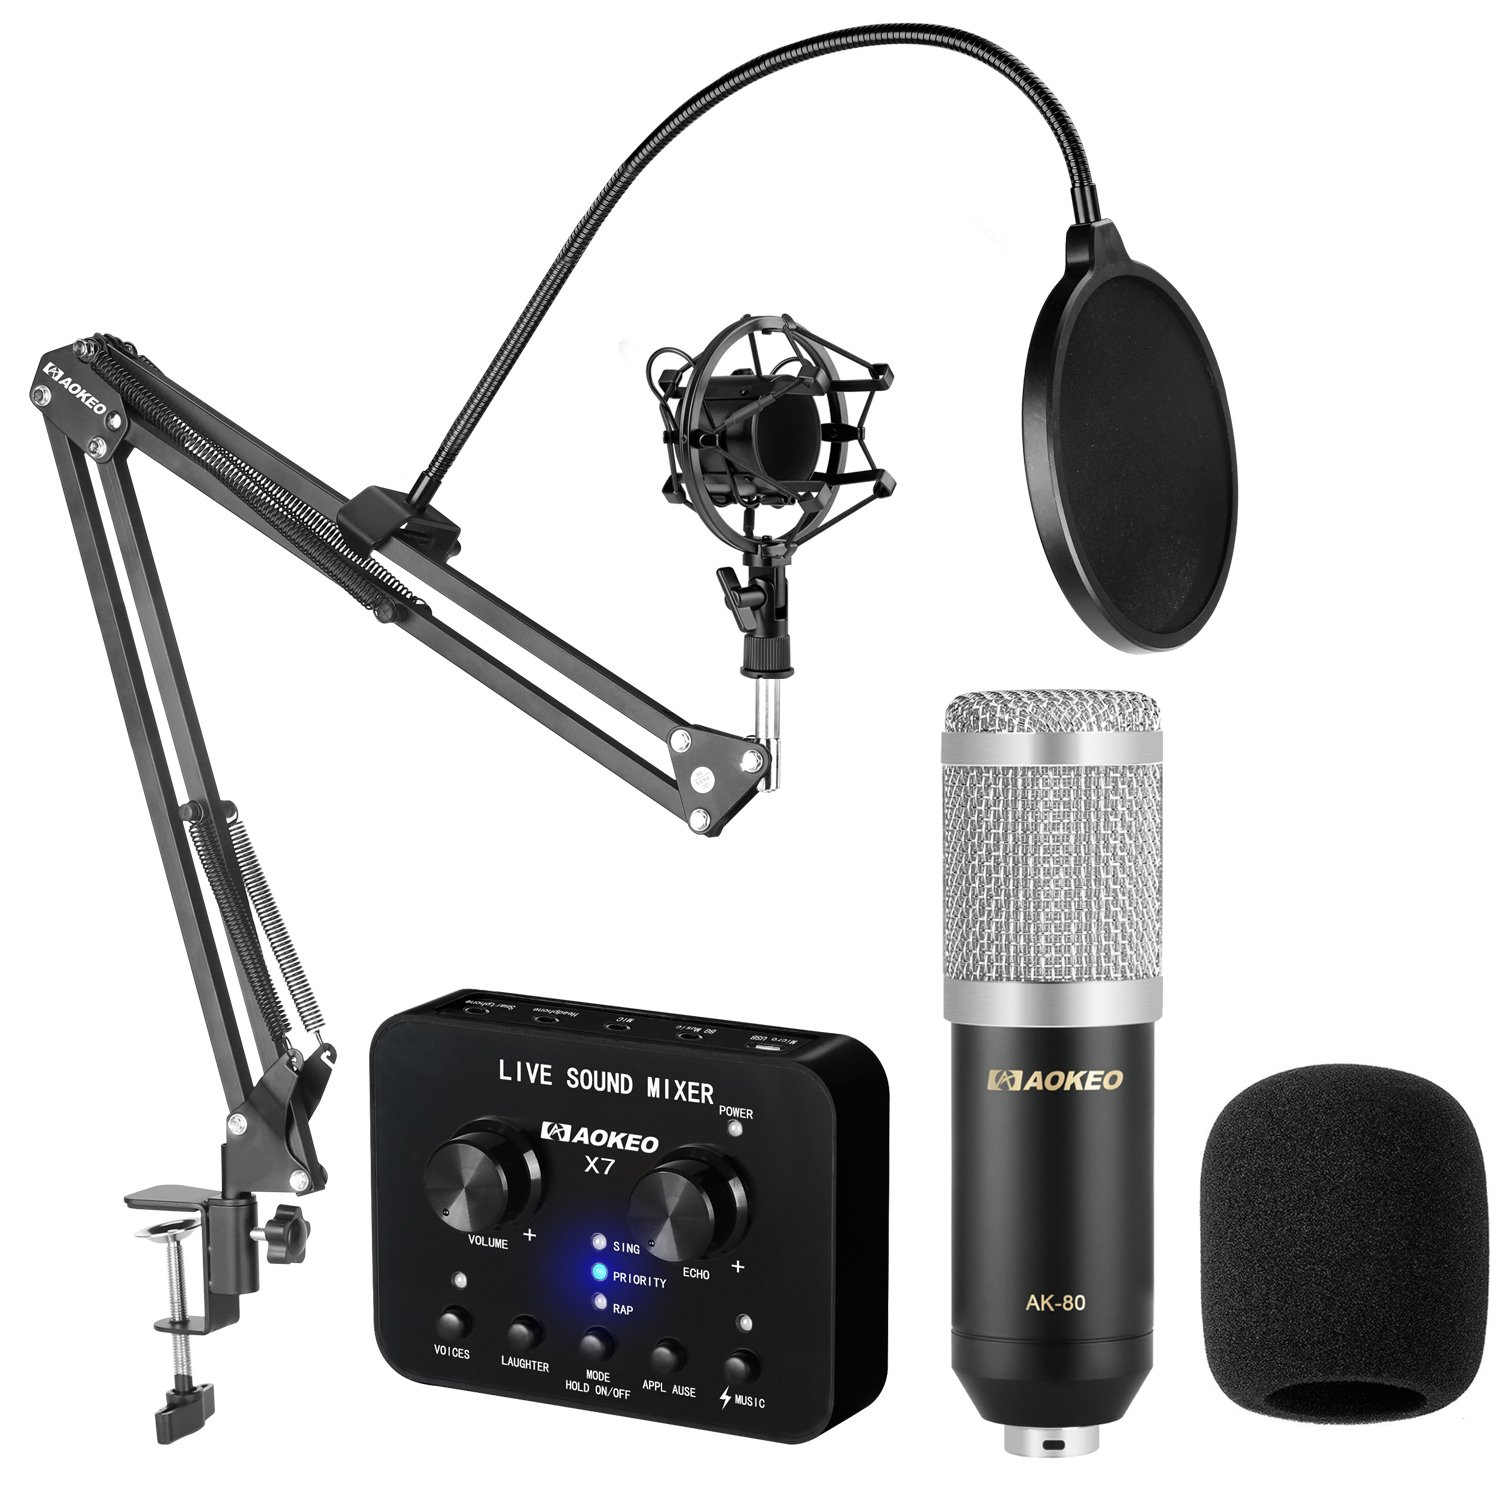 Aokeo AK-70 Professional Studio Live Stream Broadcasting Recording Condenser Microphone With Folding Adjustable Tripod Boom Floor Stand, Shock Mount, Pop Filter, USB Sound Card and Mounting Clamp 6191